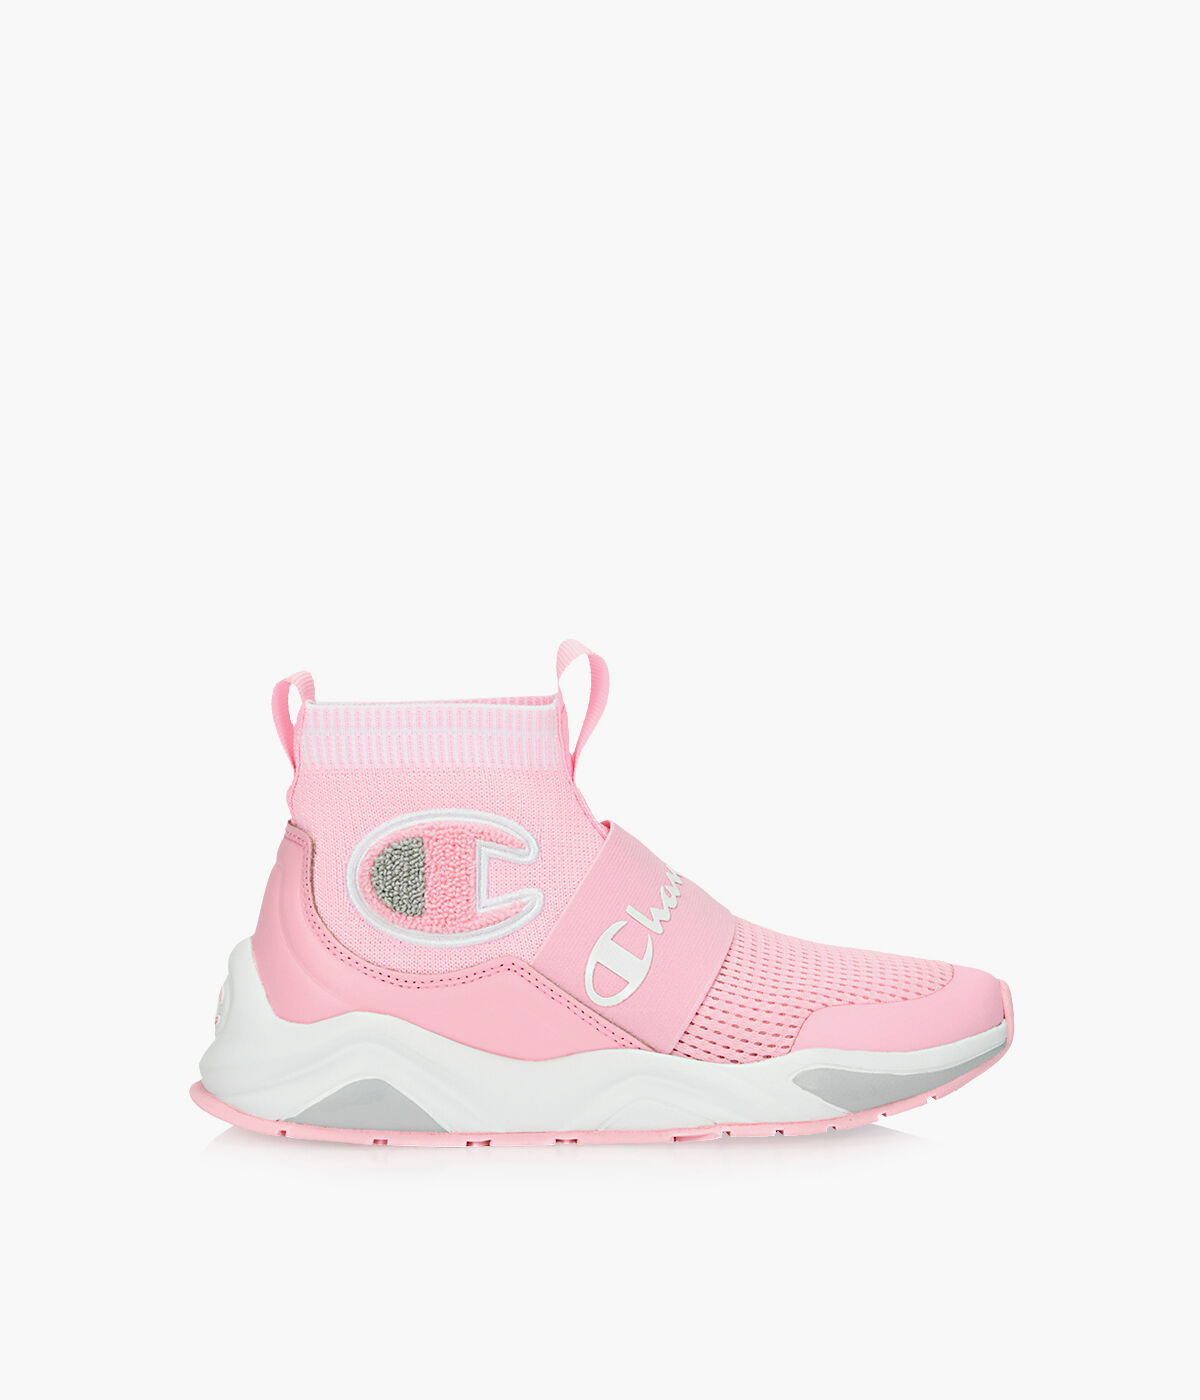 CHAMPION RALLY PRO - Pink | Browns Shoes